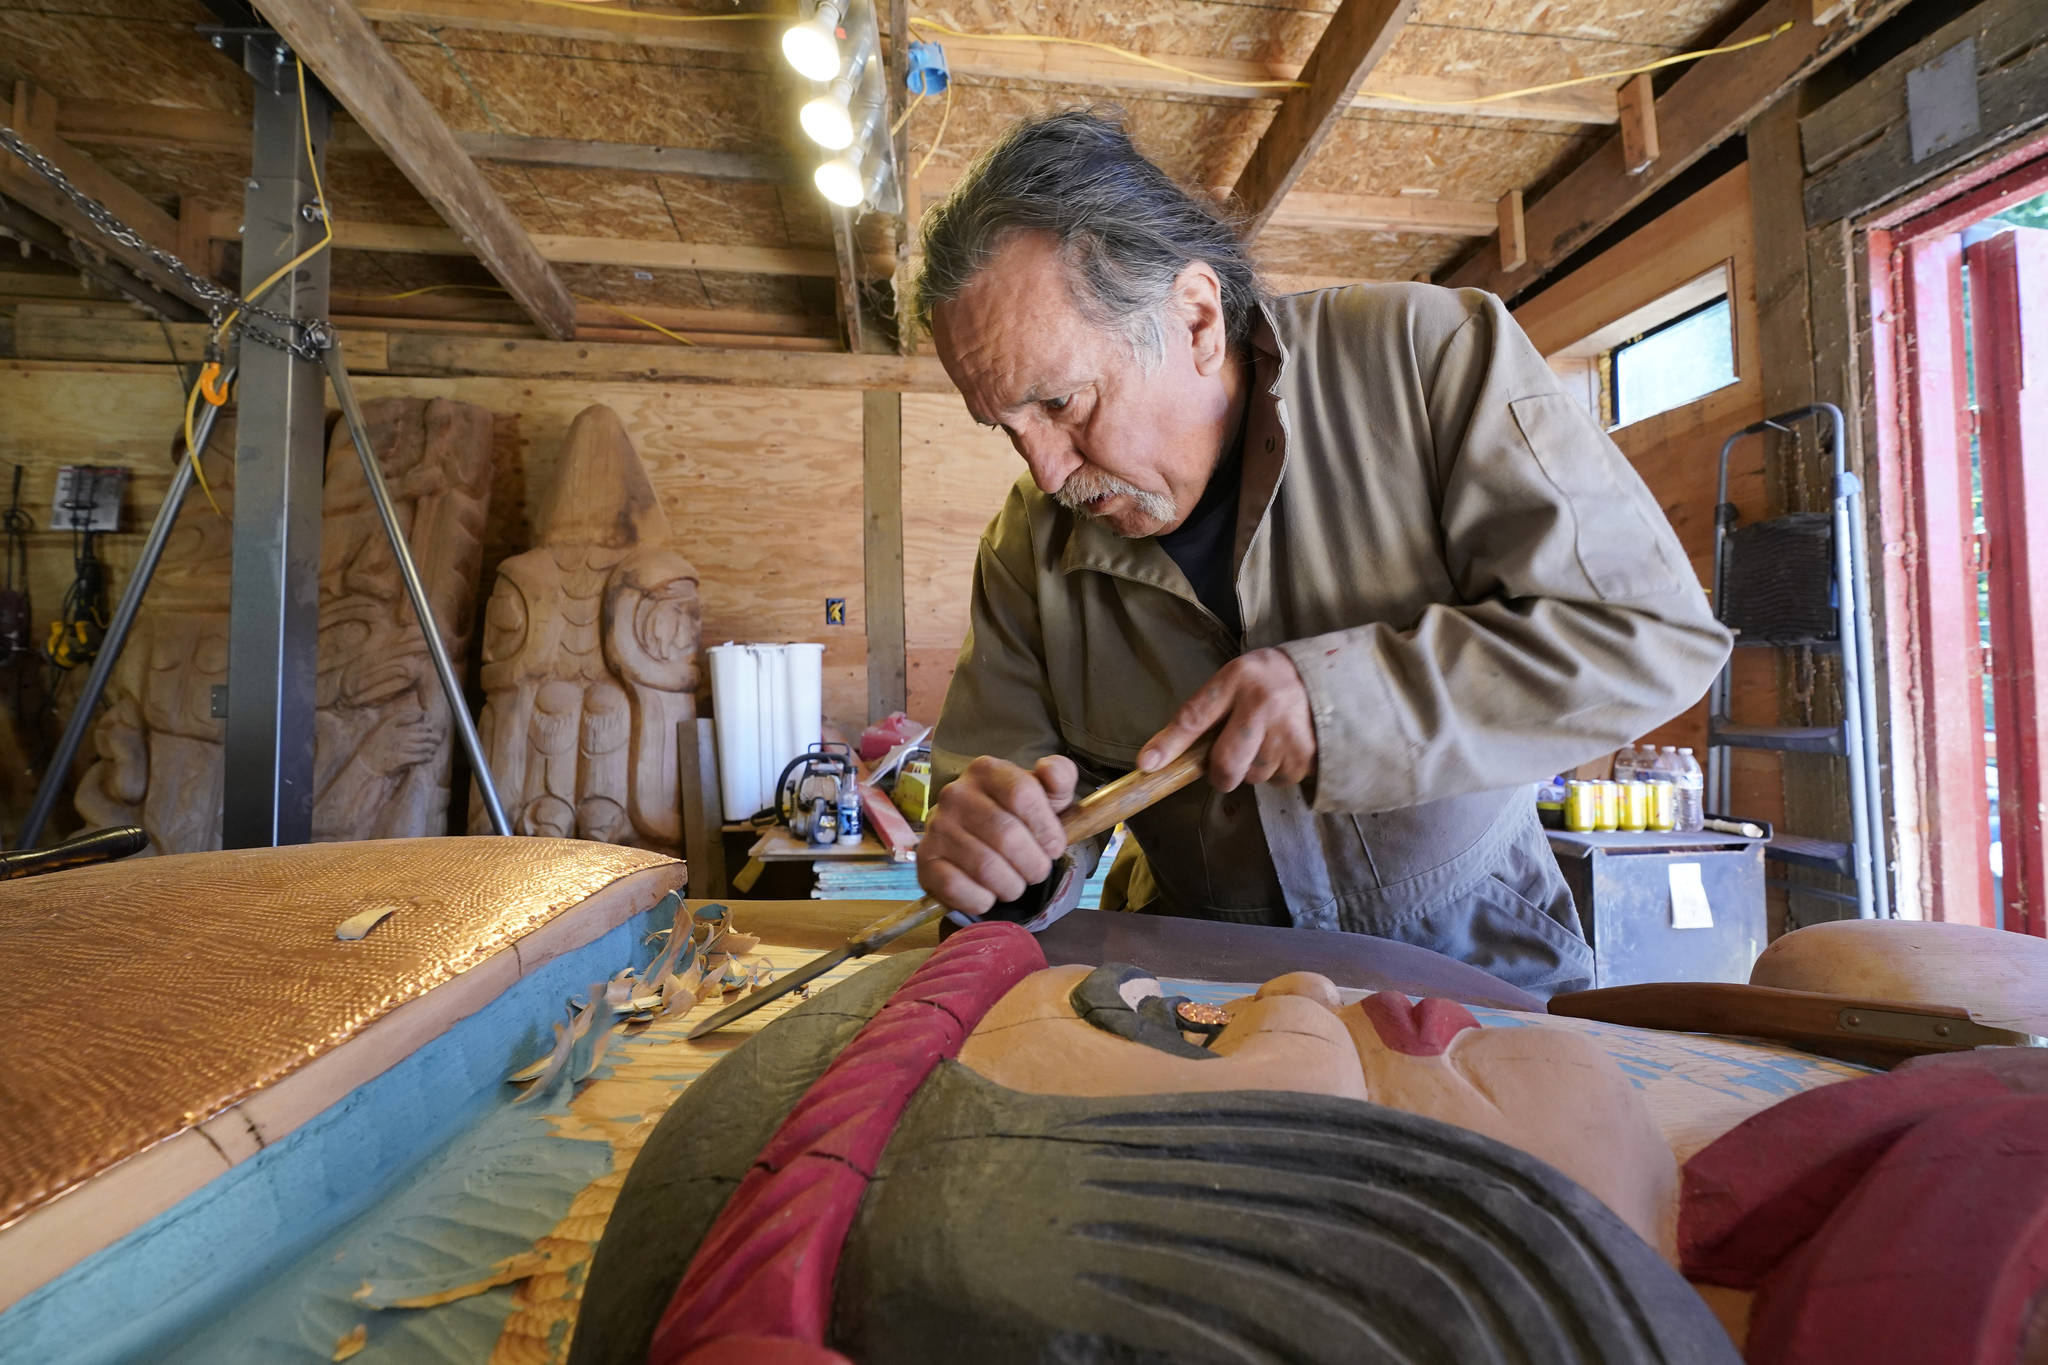 Lummi Nation lead carver Jewell James works on the final details on Monday of a nearly 25-foot totem pole to be gifted to the Biden administration from the Lummi Reservation near Bellingham. The pole, carved from a 400-year-old red cedar, will make a journey from the reservation past sacred indigenous sites before arriving in Washington, D.C., in early June. Organizers said the totem pole is a reminder to leaders to honor the rights of Indigenous people and their sacred sites. (Elaine Thompson/The Associated Press)